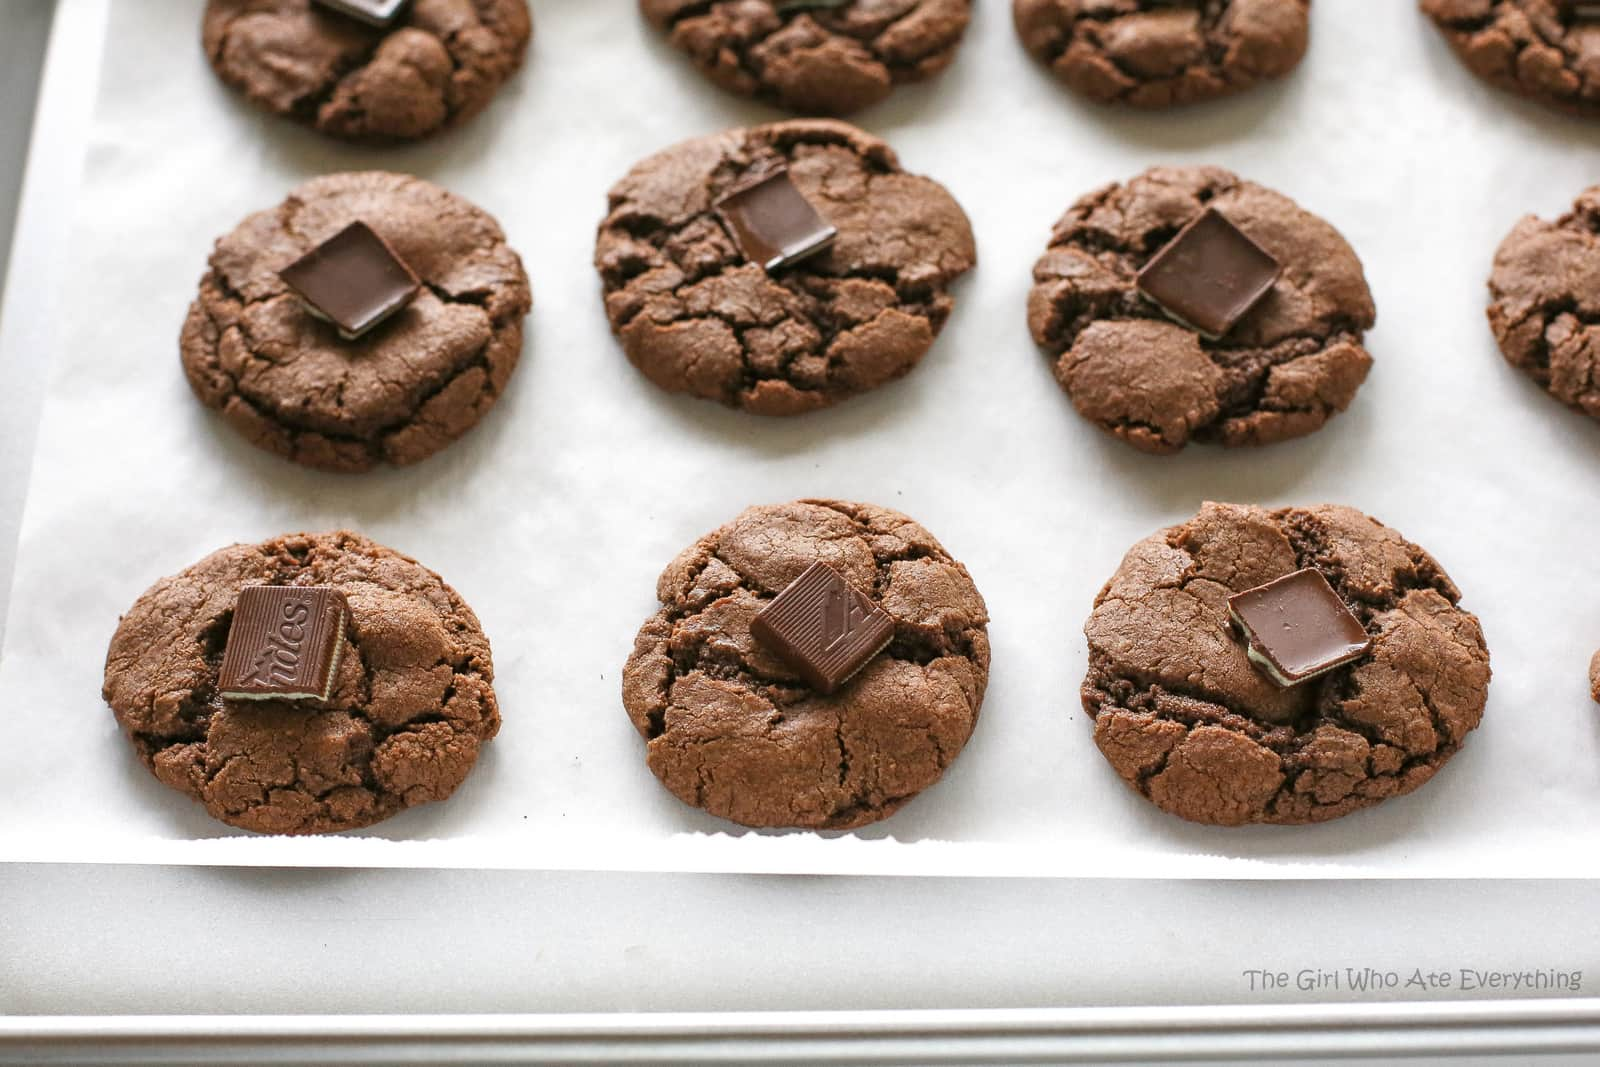 Chocolate Mint Cookies - The Girl Who Ate Everything